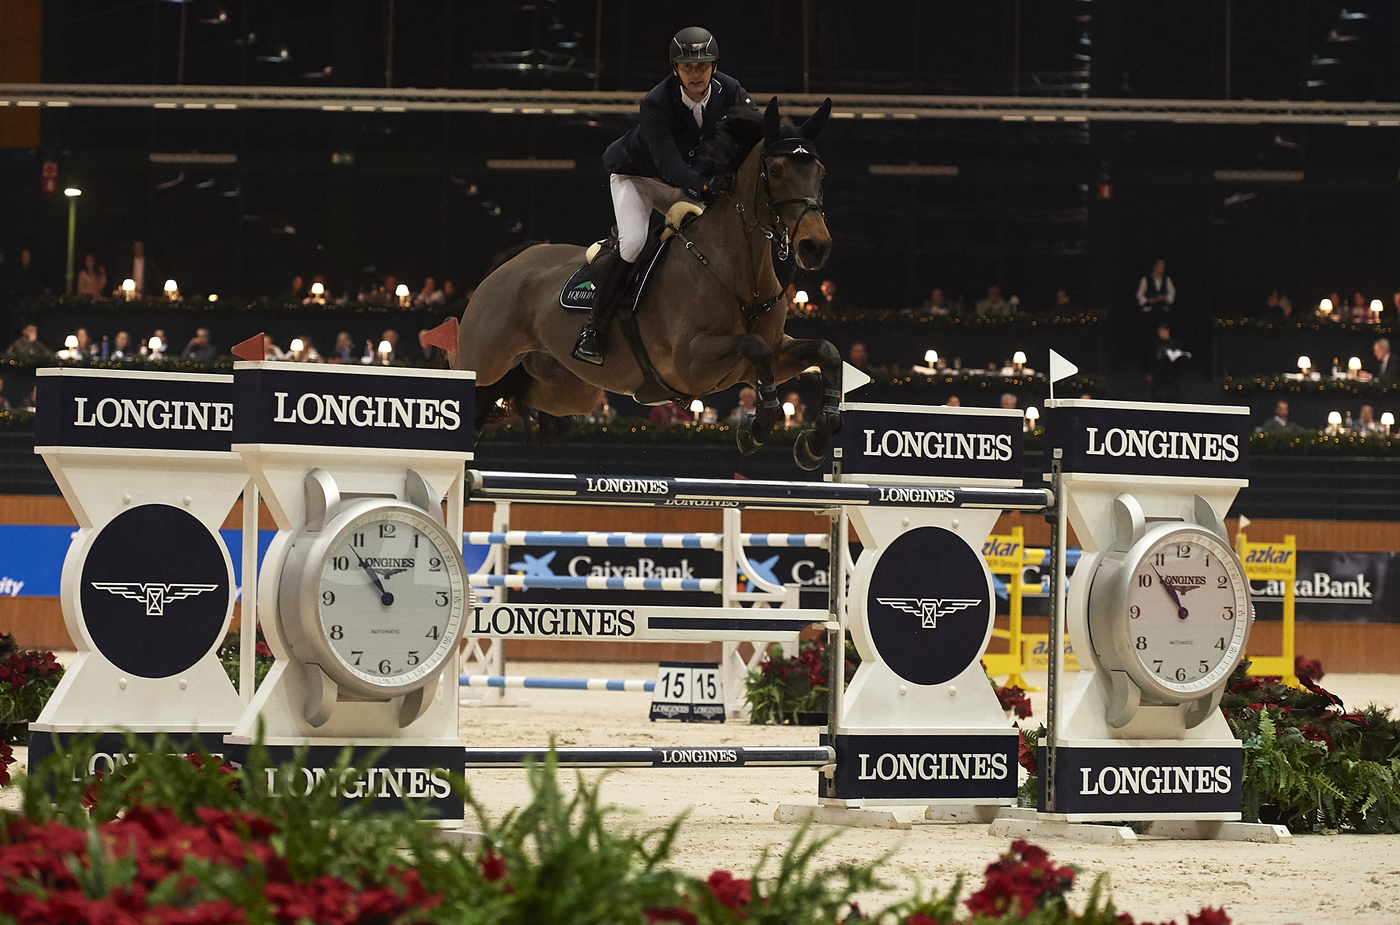 Longines Show Jumping Event: Carlos Enrique Lopez Lizarazo and Admara 2 galloped to victory at the Longines FEI World Cup™ Jumping in La Coruña  4